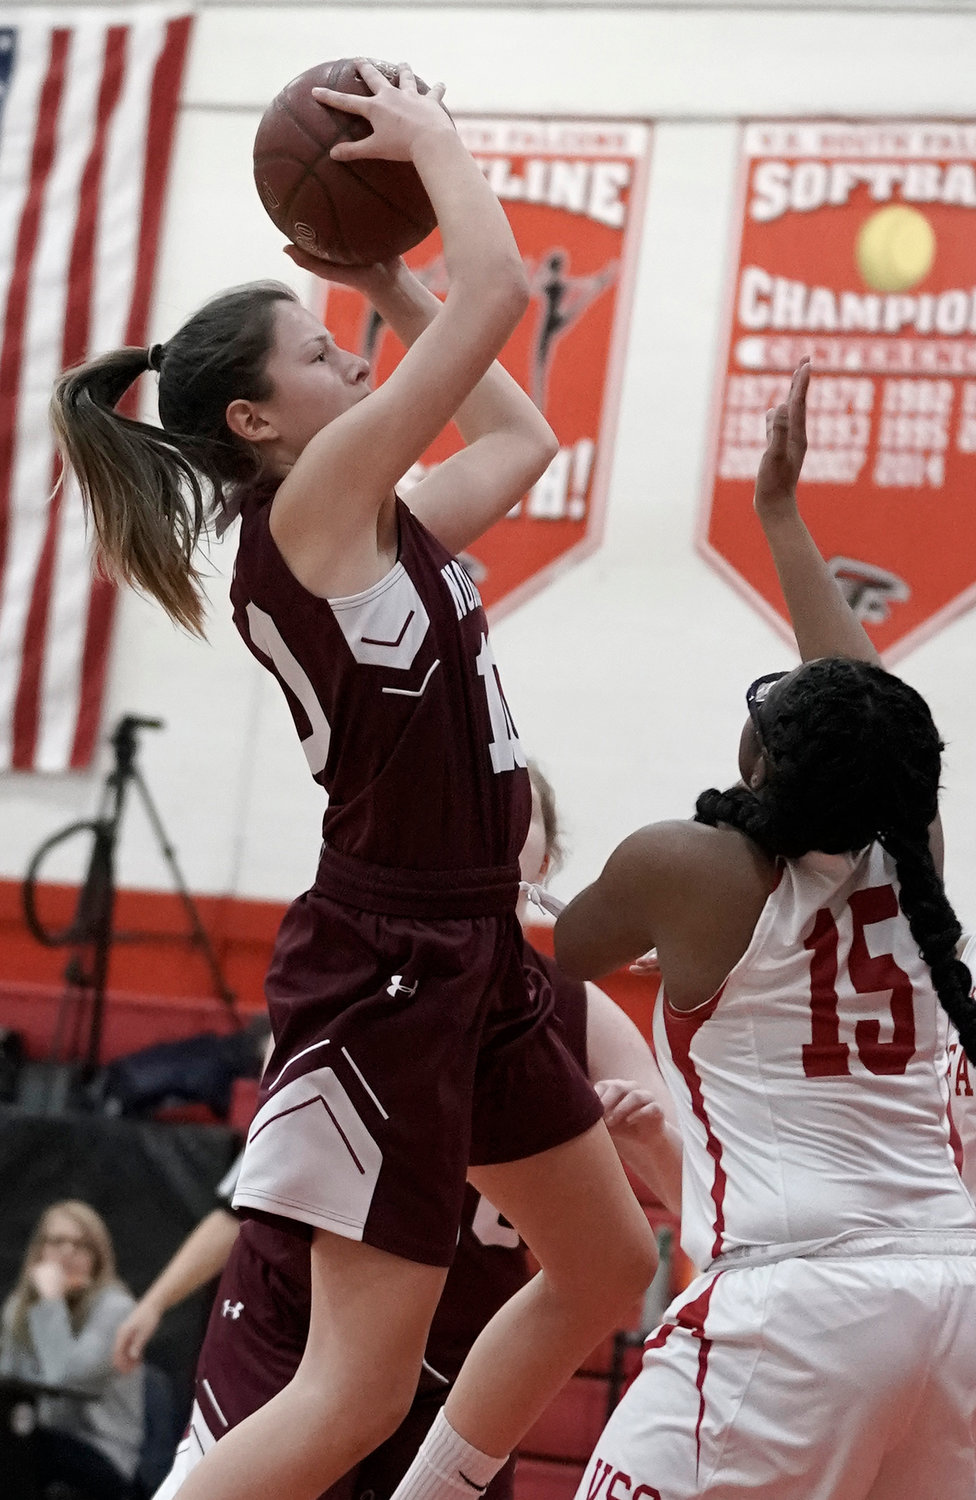 Jennifer Walton, left, scored 15 points Jan. 31 as the Lady Vikings won their fourth straight, beating visiting Lynbrook, 56-53.